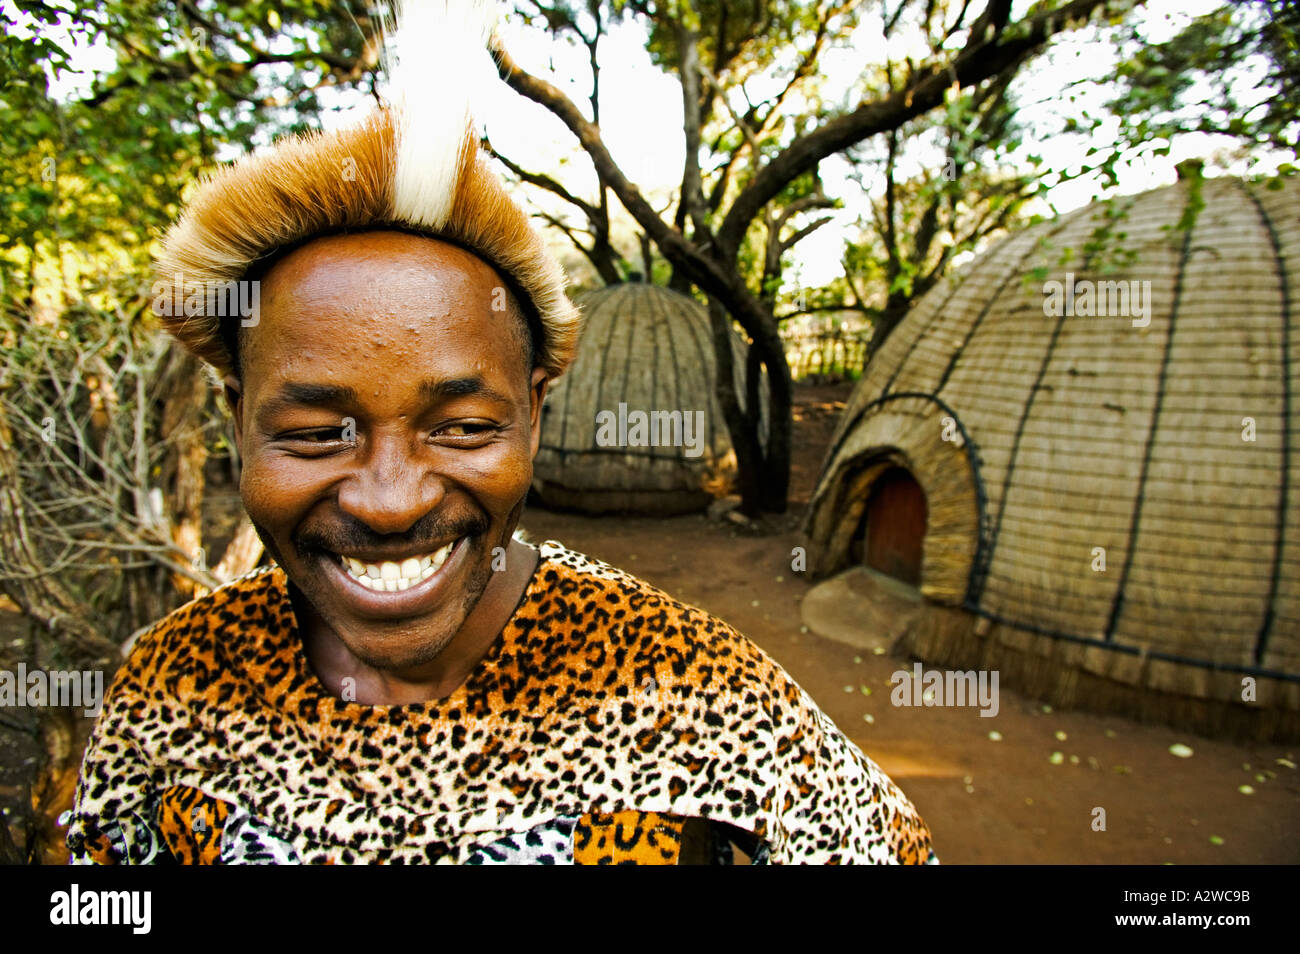 People Zulu man in traditional dress Model released Lesedi Cultural Village near Johannesburg South Africa - Stock Image